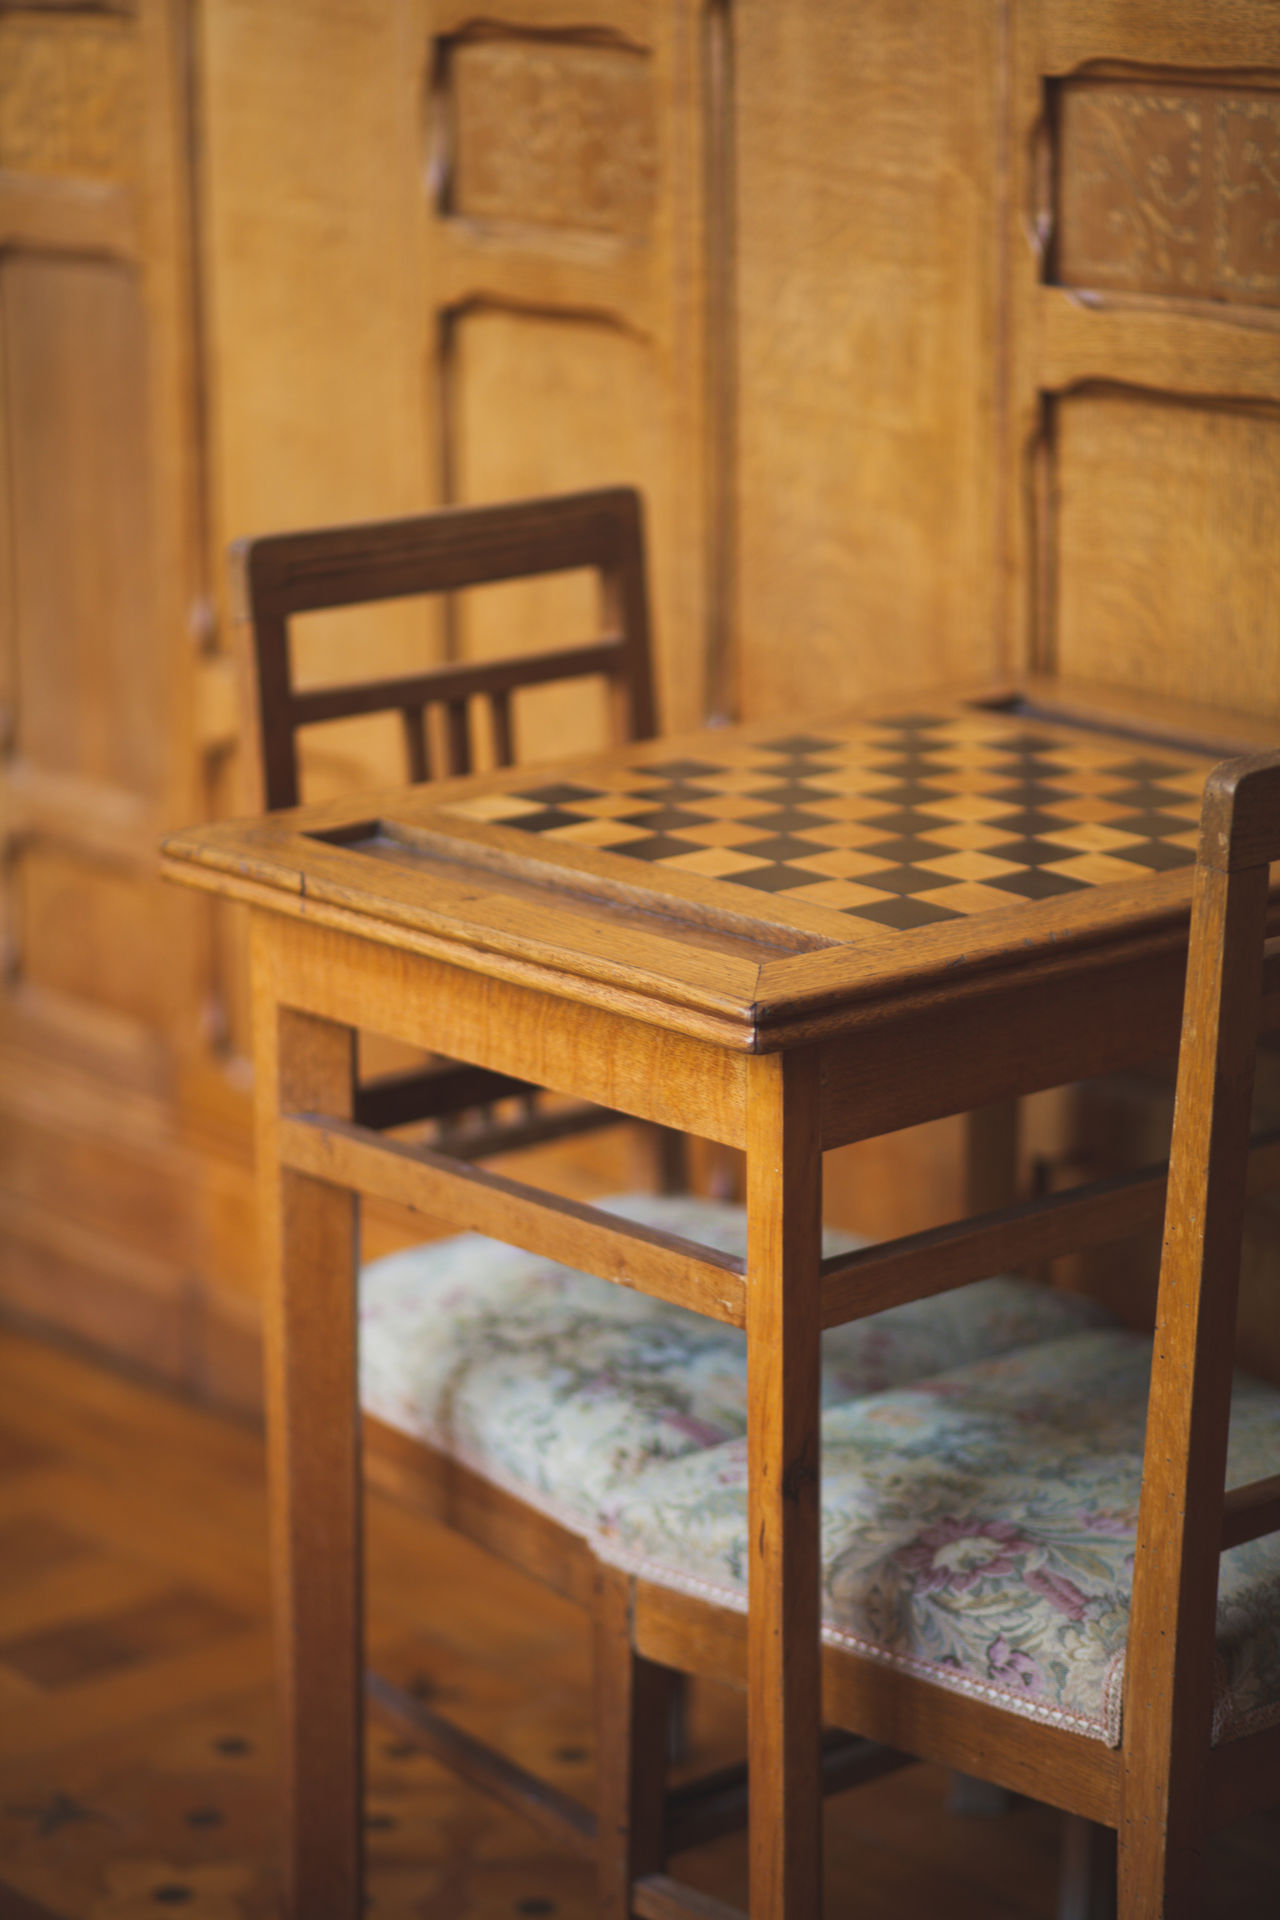 Wood - Material No People Indoors  Day Chess Chess Board Vintage Furniture Old Table Chair Board Wall Game